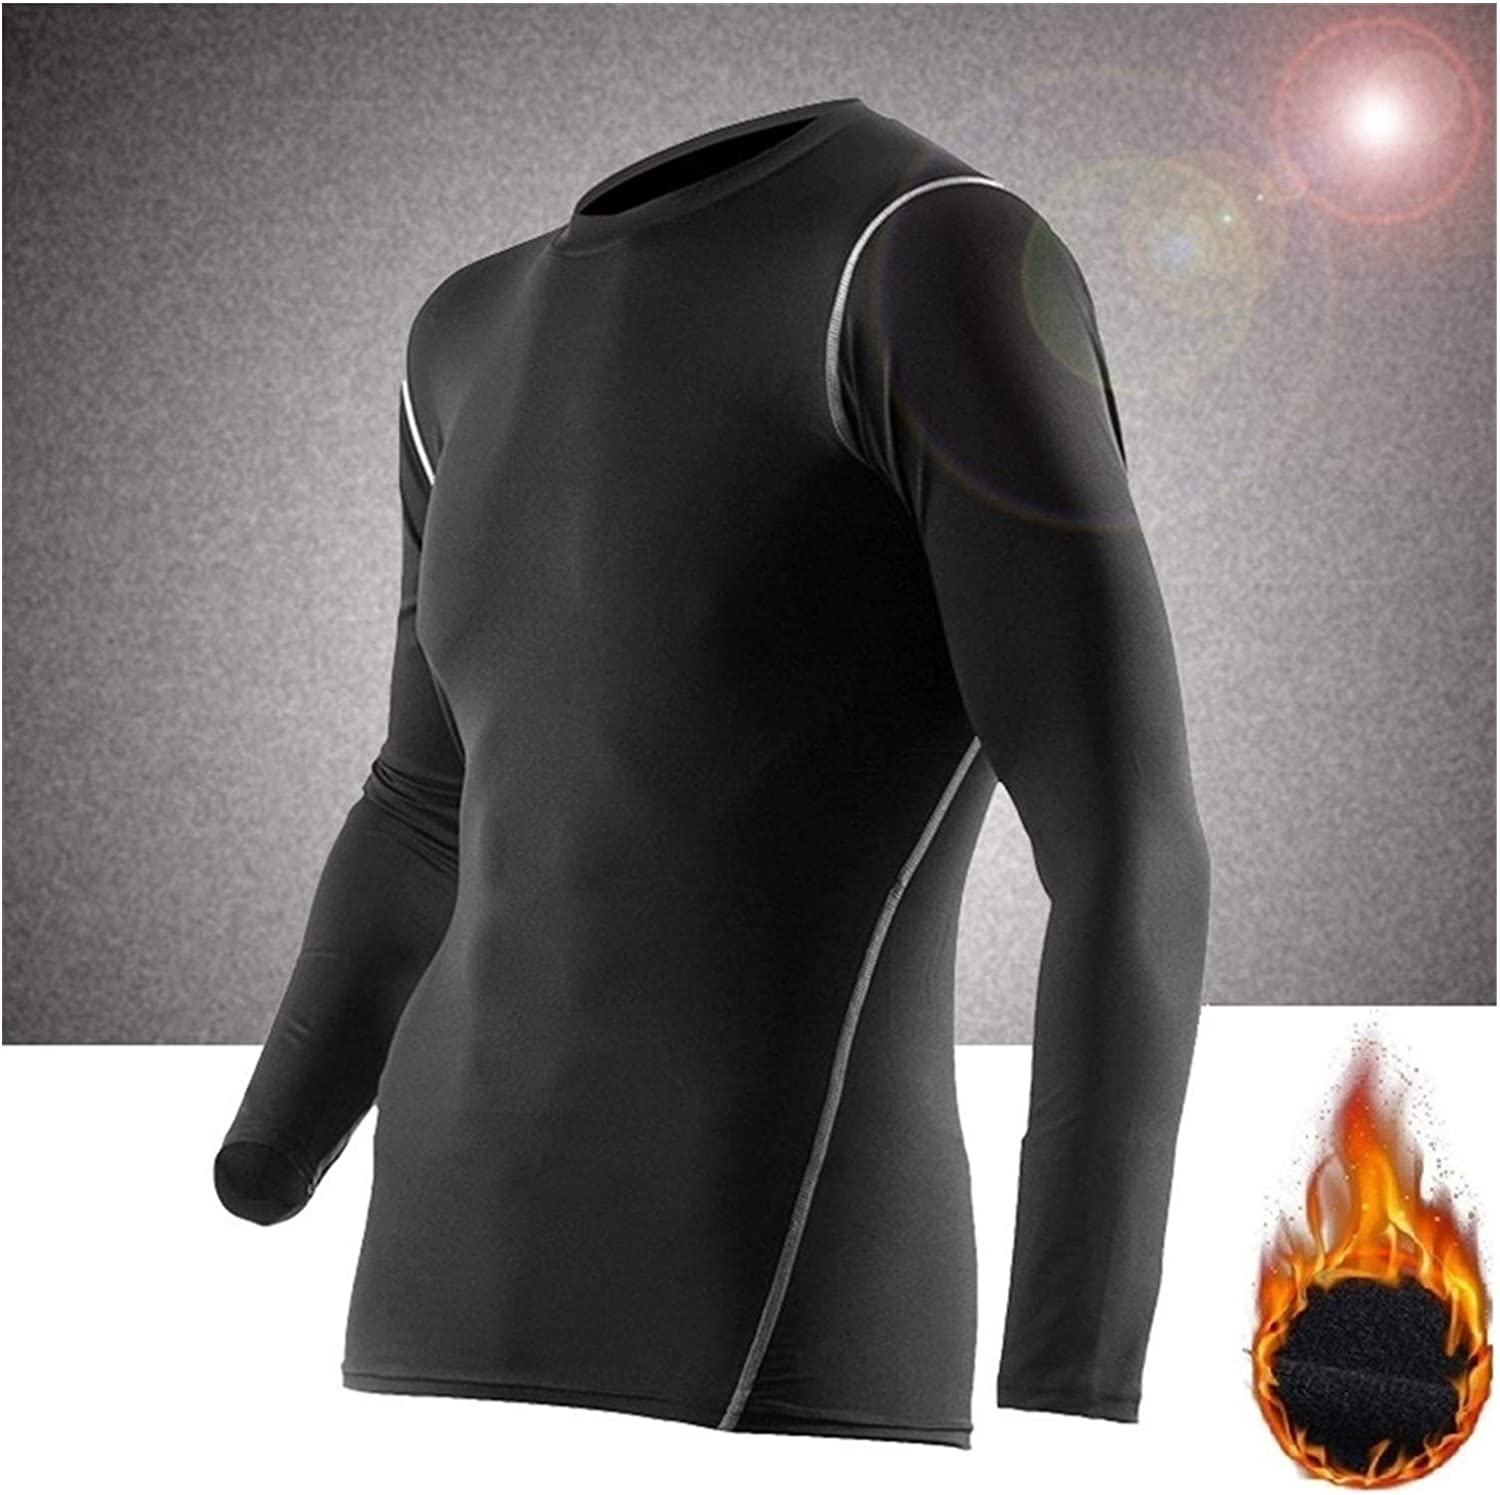 QWERBAM Winter Thermal Underwear for Men Keep Warm Fitness Flecce Legging and Undershirts (Color : A1 Shirt, Size : Medium)